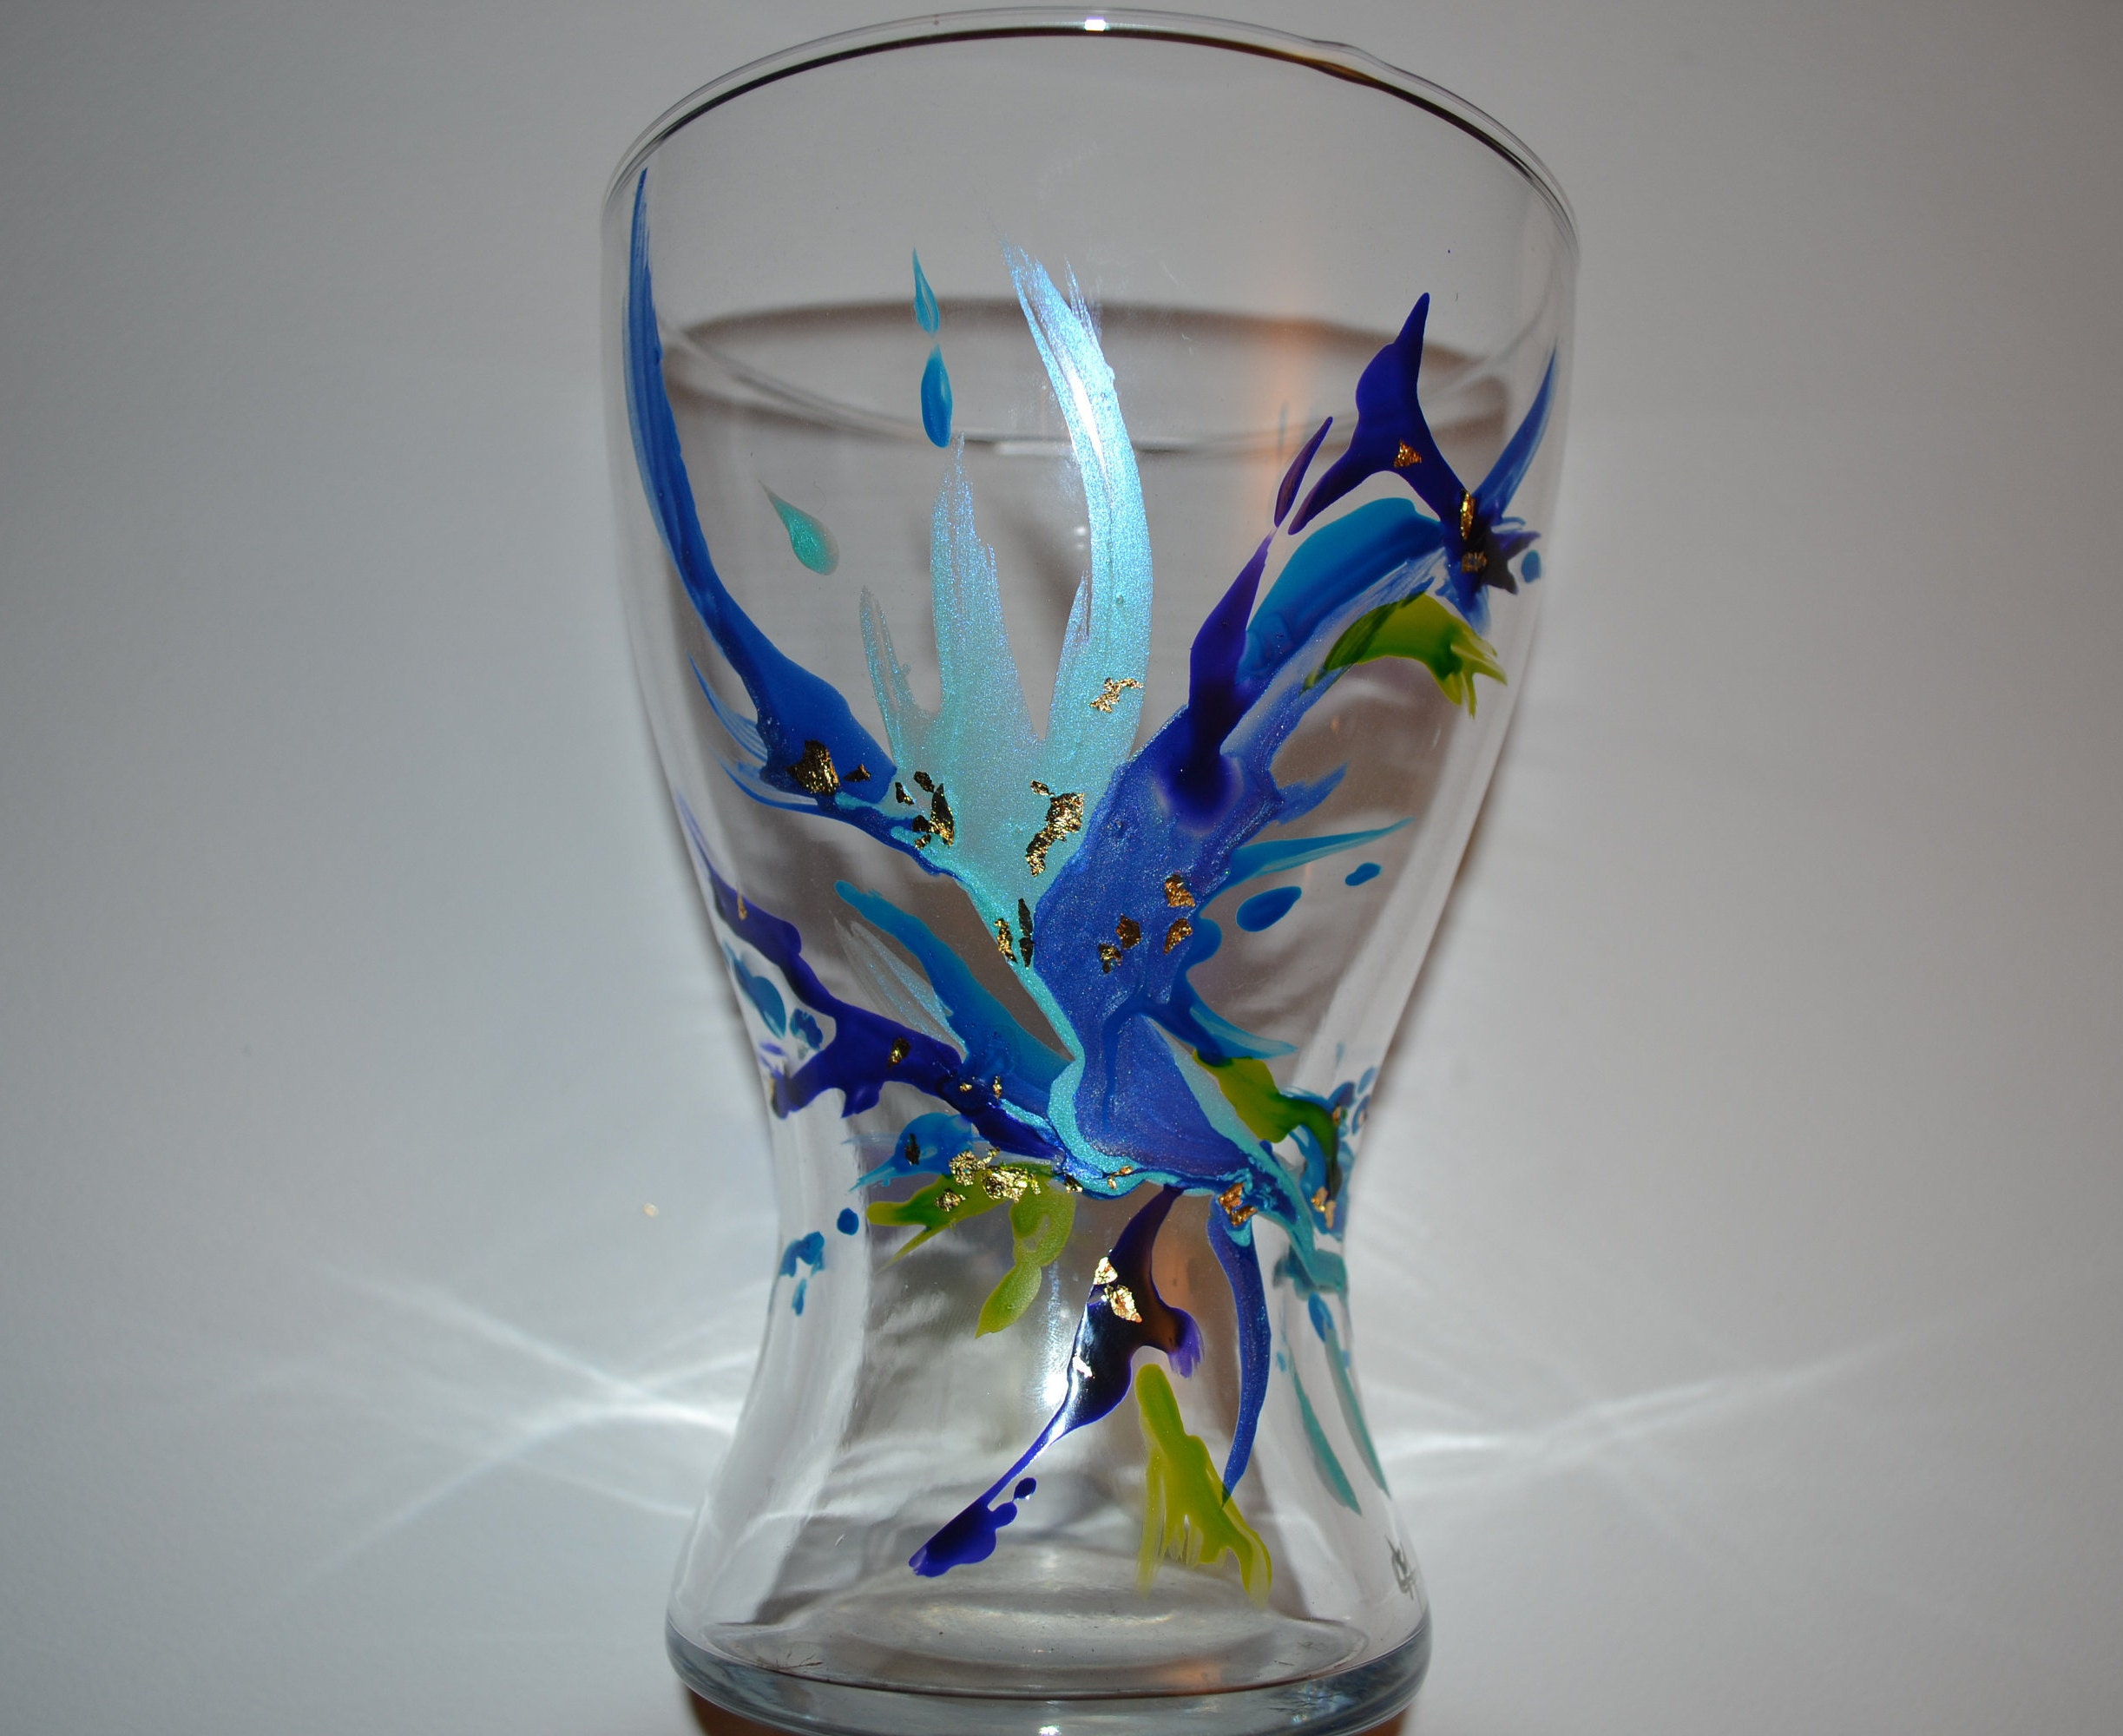 Idee Deco Pour Grand Vase Transparent vase large painted glass murano style, blue and green anise, large vase,  painted flared vase, blue vase, vase color painting on glass opaleisis